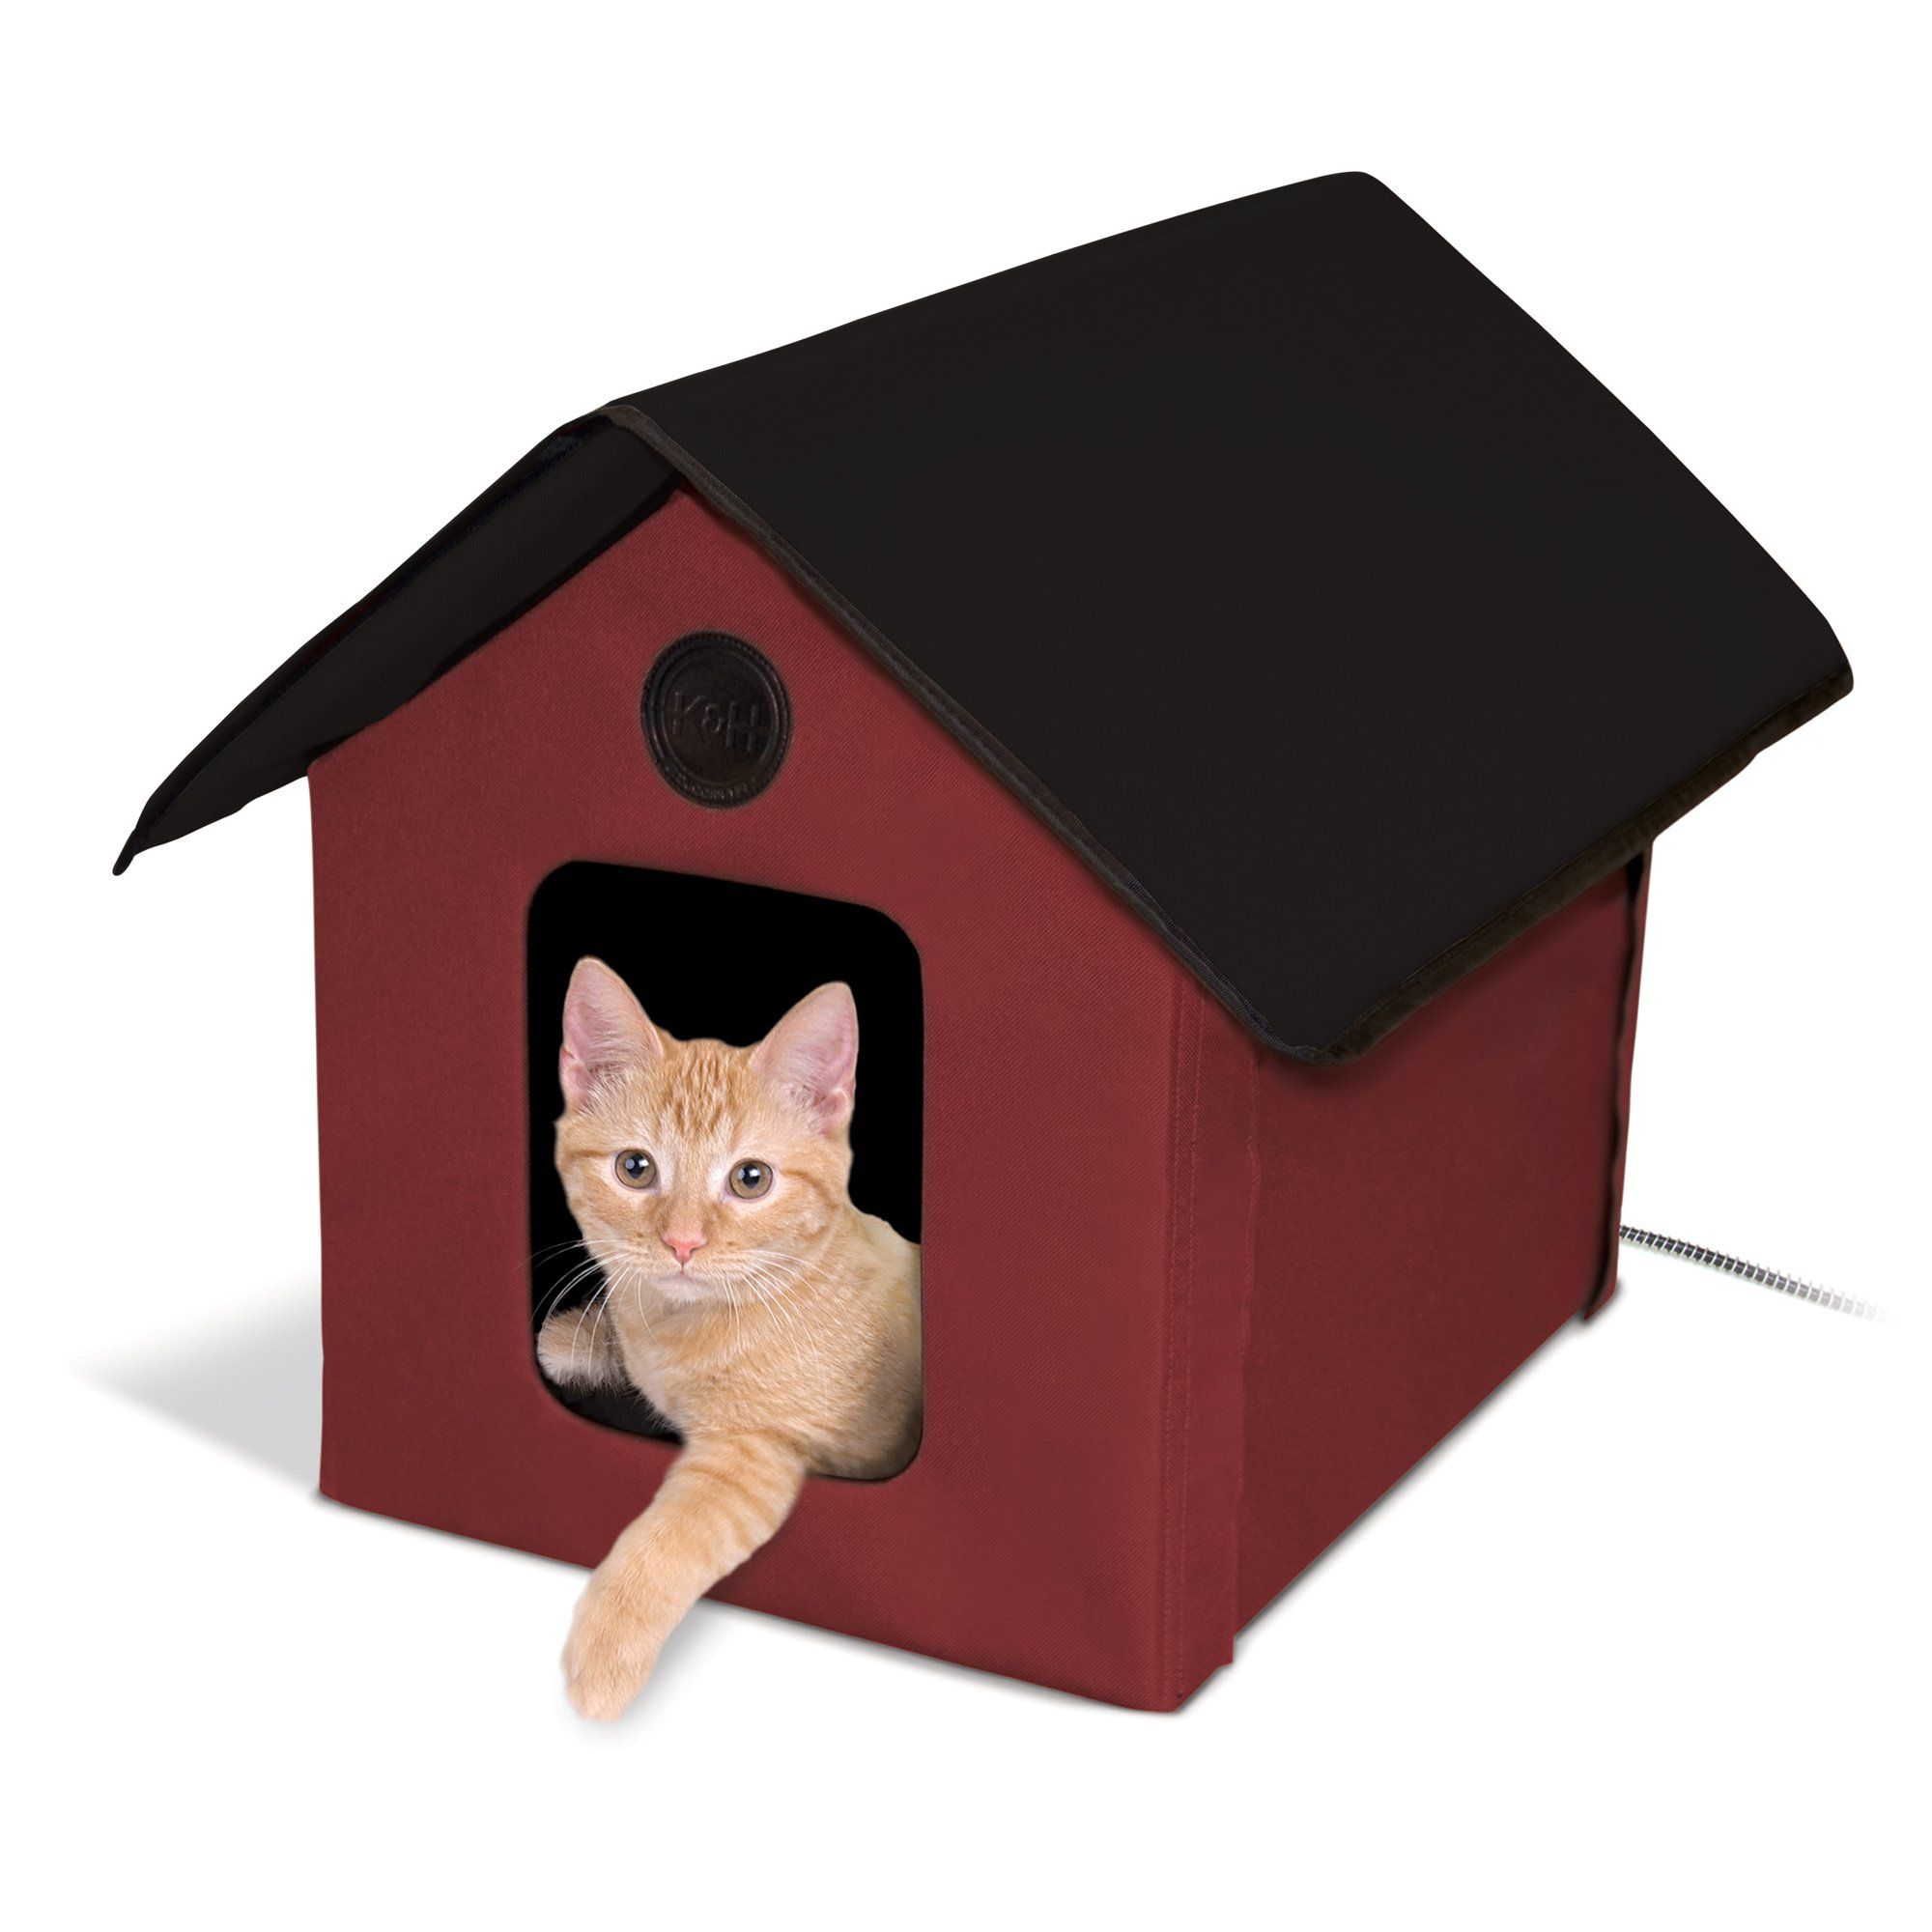 K H Red And Black Outdoor Heated Cat House Barn 18 L X 22 W Petco Outdoor Cat House Heated Outdoor Cat House Heated Cat House